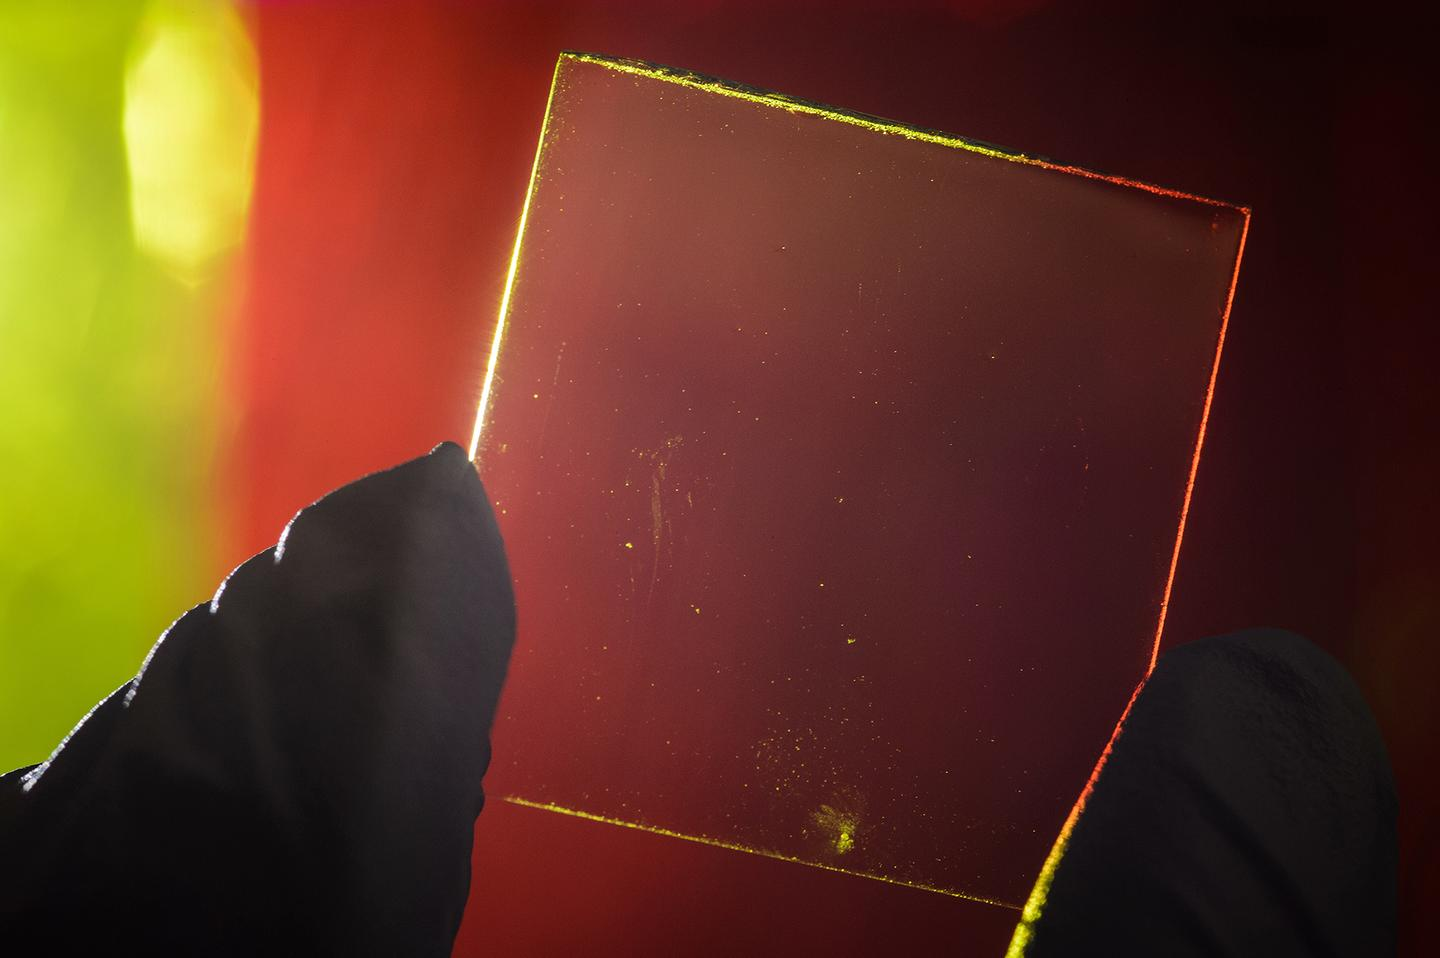 The transparent solar collectors developed by the MSU team use microscopic organic molecules